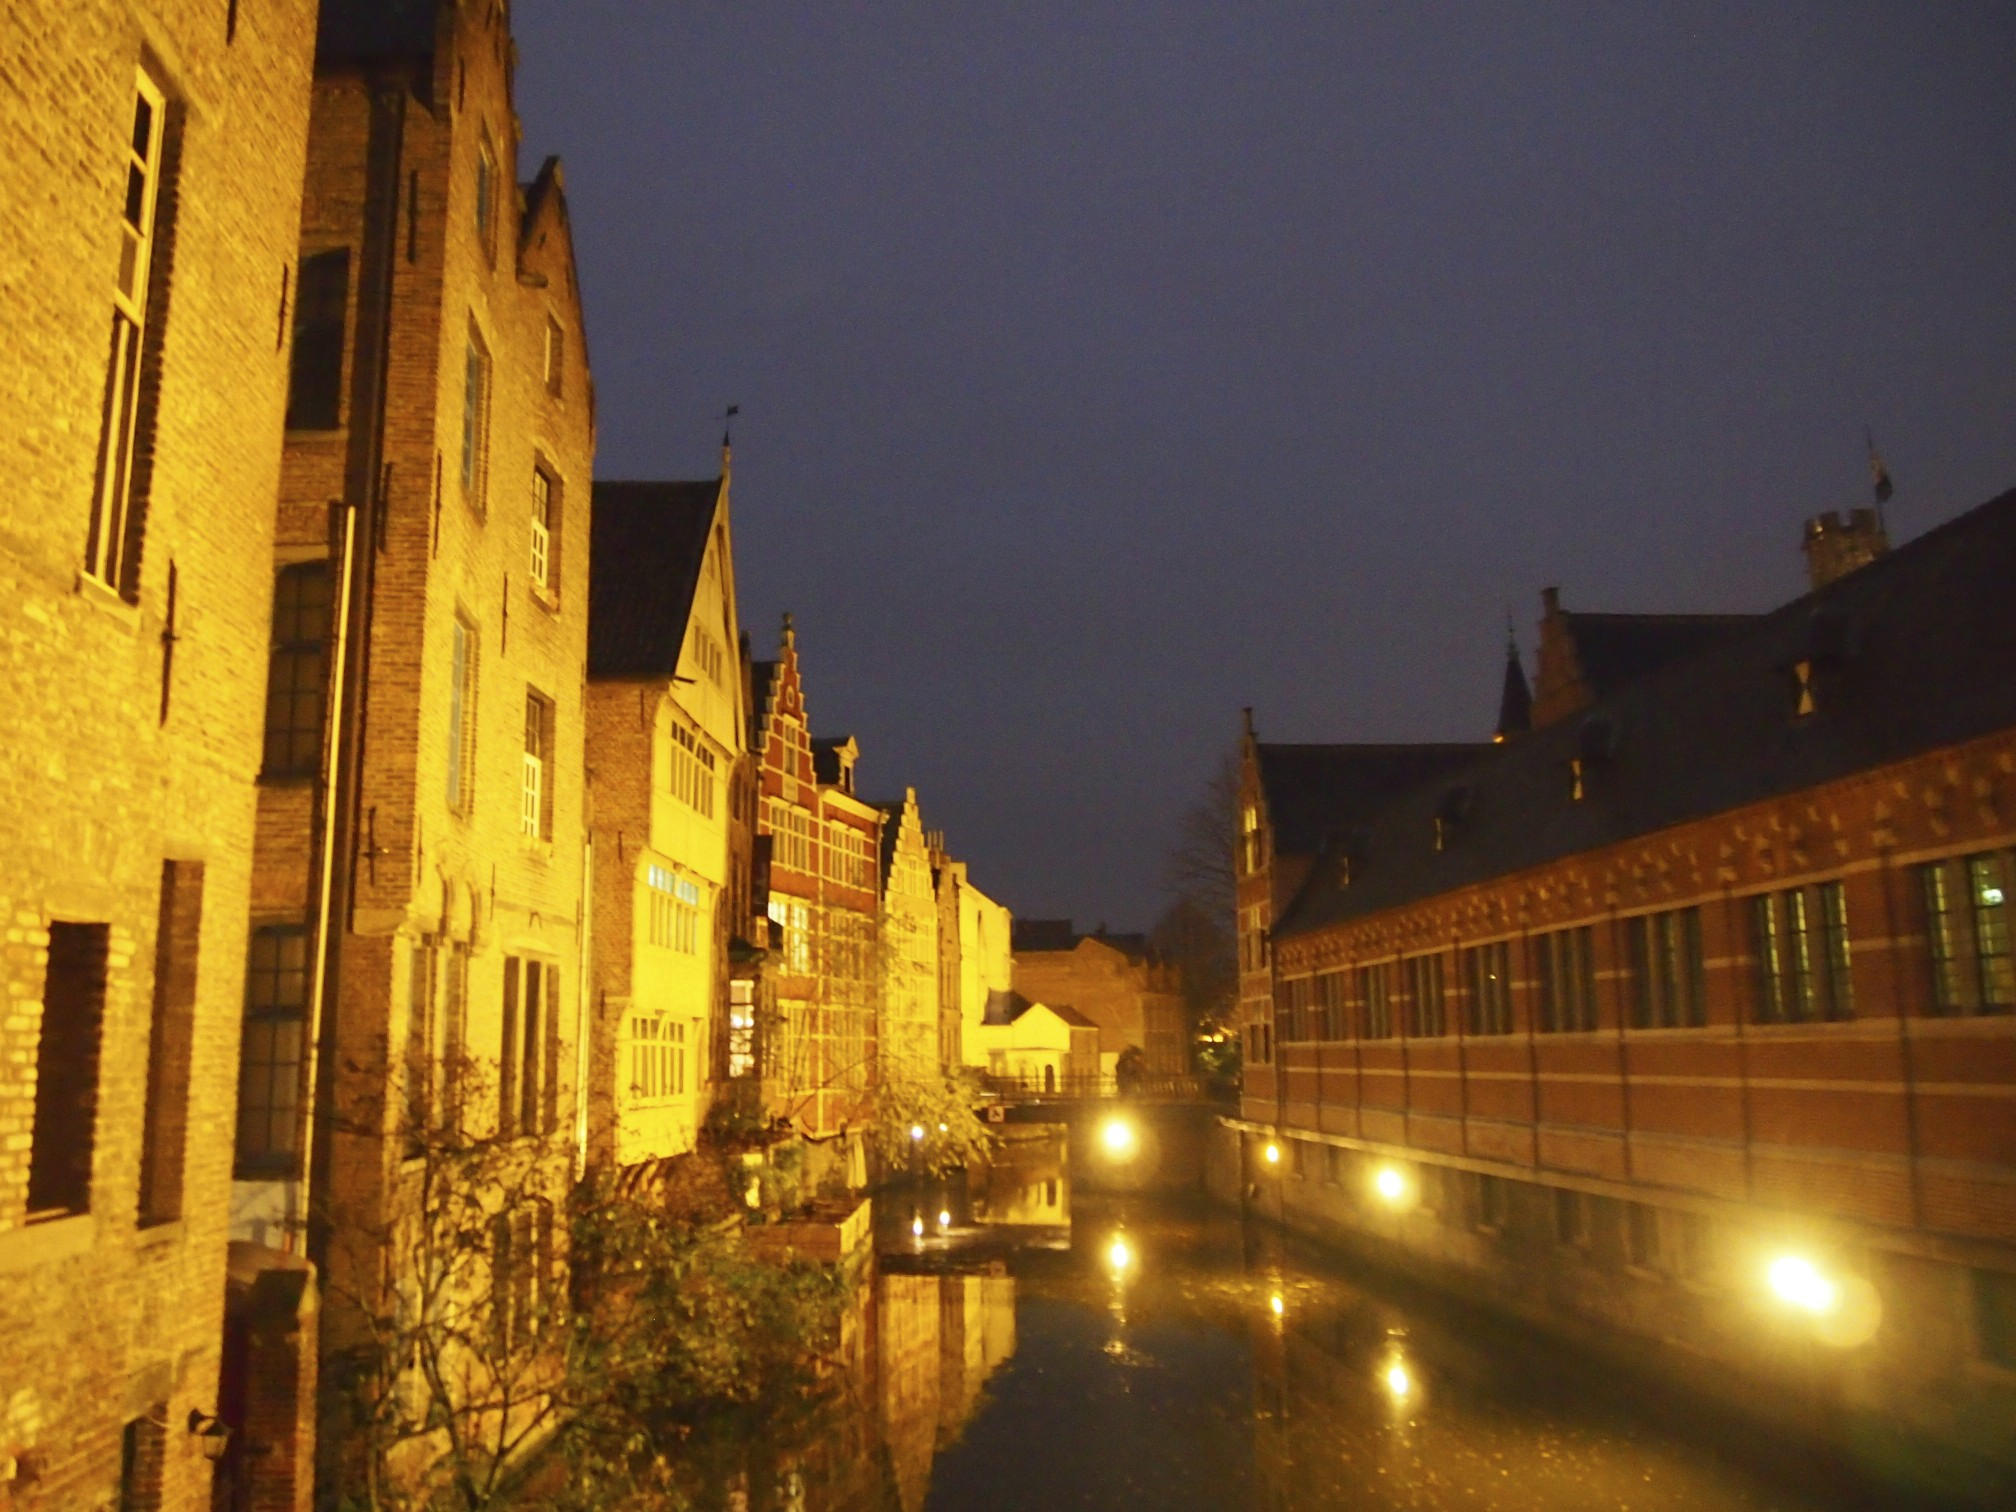 Night canal in ghent, belgium photo